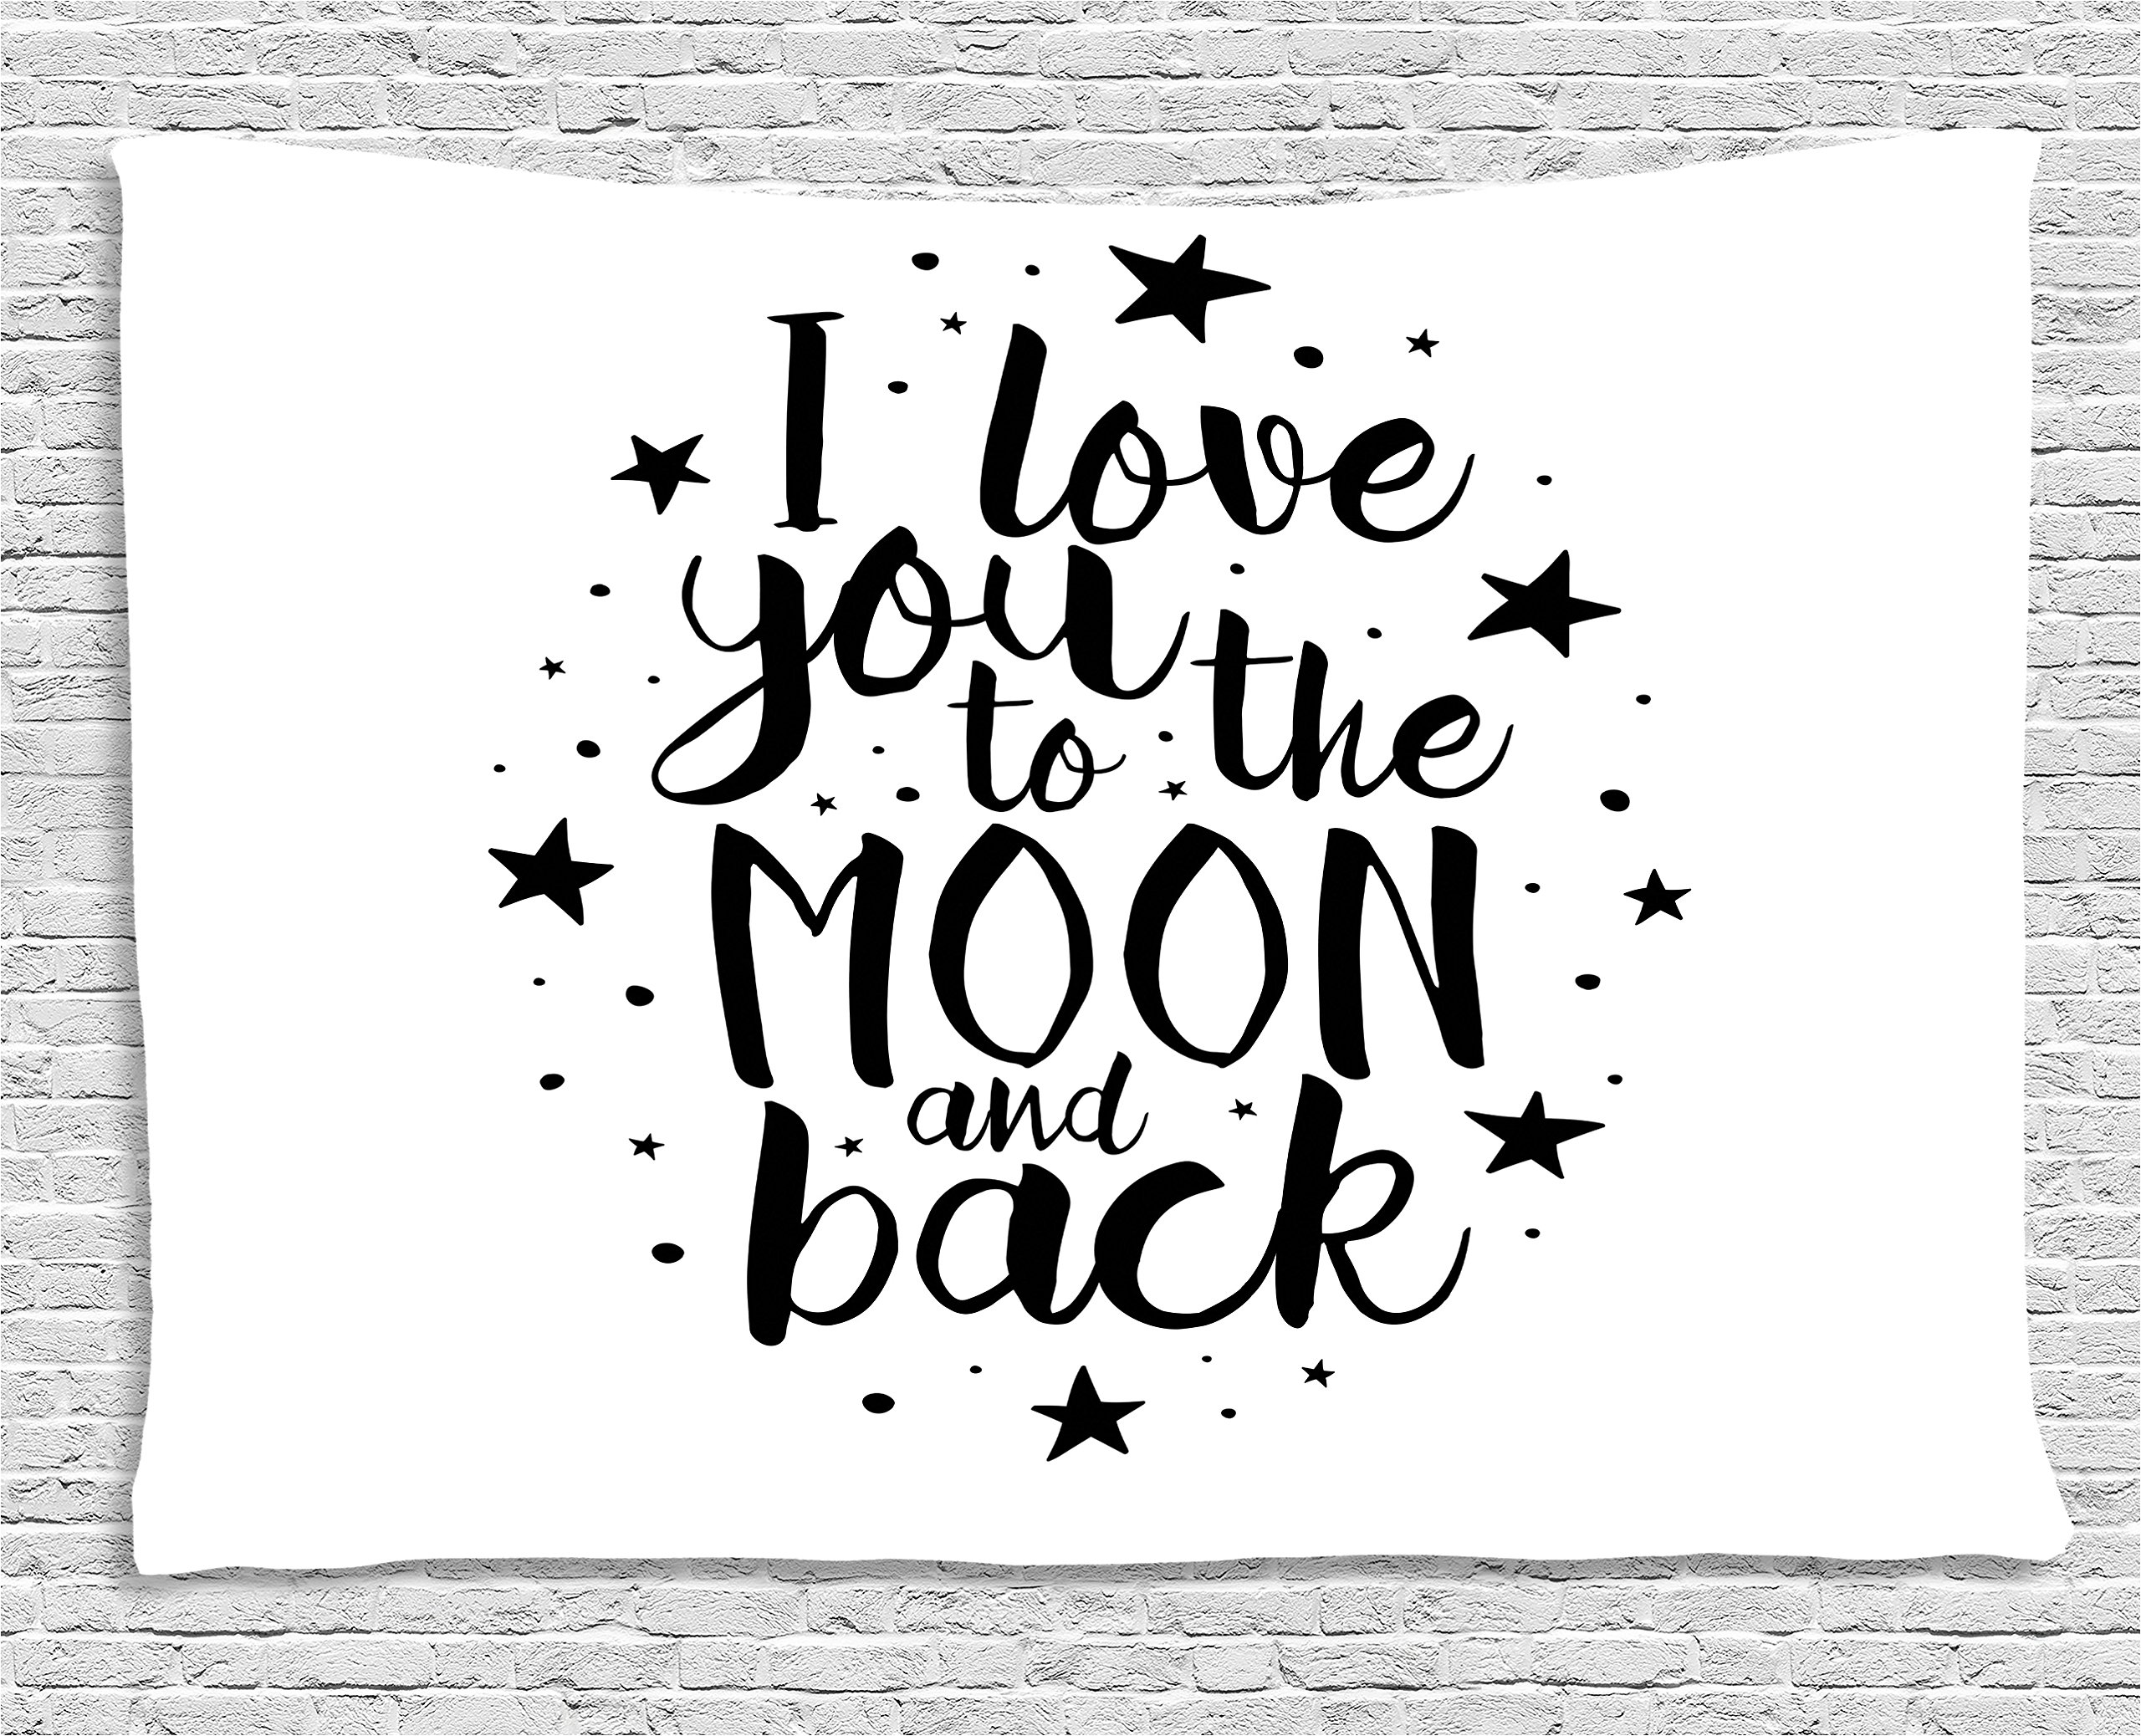 Ambesonne I Love You Tapestry, Romantic I Love You to The Moon and Back Motivational Lifestyle Quote Print, Wall Hanging for Bedroom Living Room Dorm, 60 W X 40 L Inches, Black White